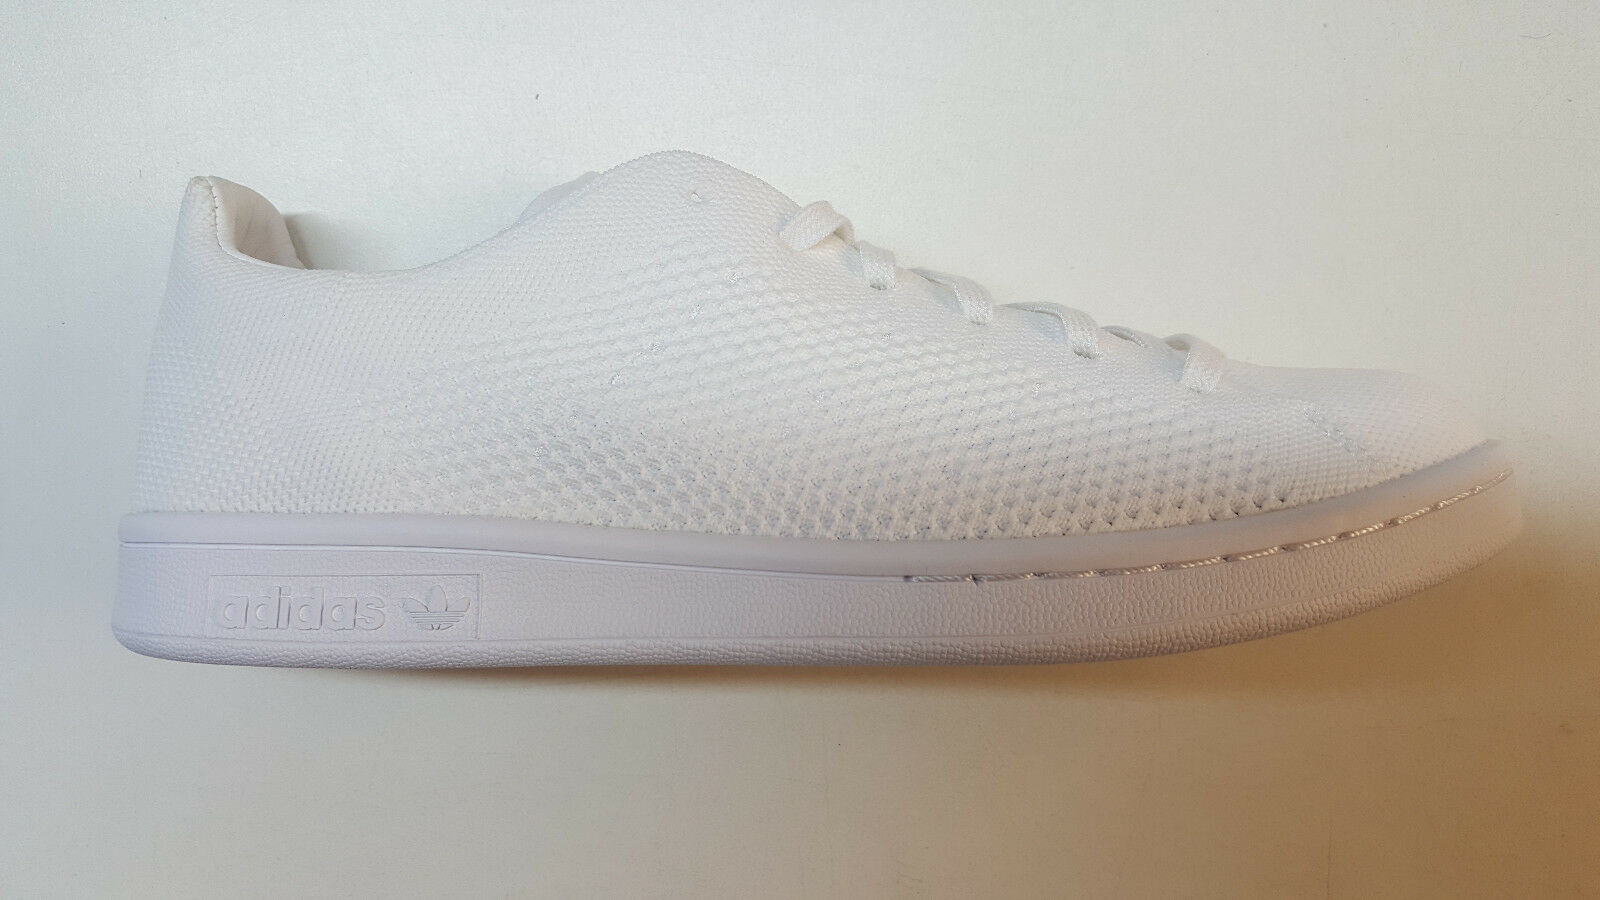 b4296bcd8ef durable modeling ADIDAS ORIGINALS STAN SMITH PRIMEKNIT ALL WHITE MENS SIZE  SNEAKERS RETRO BB3786